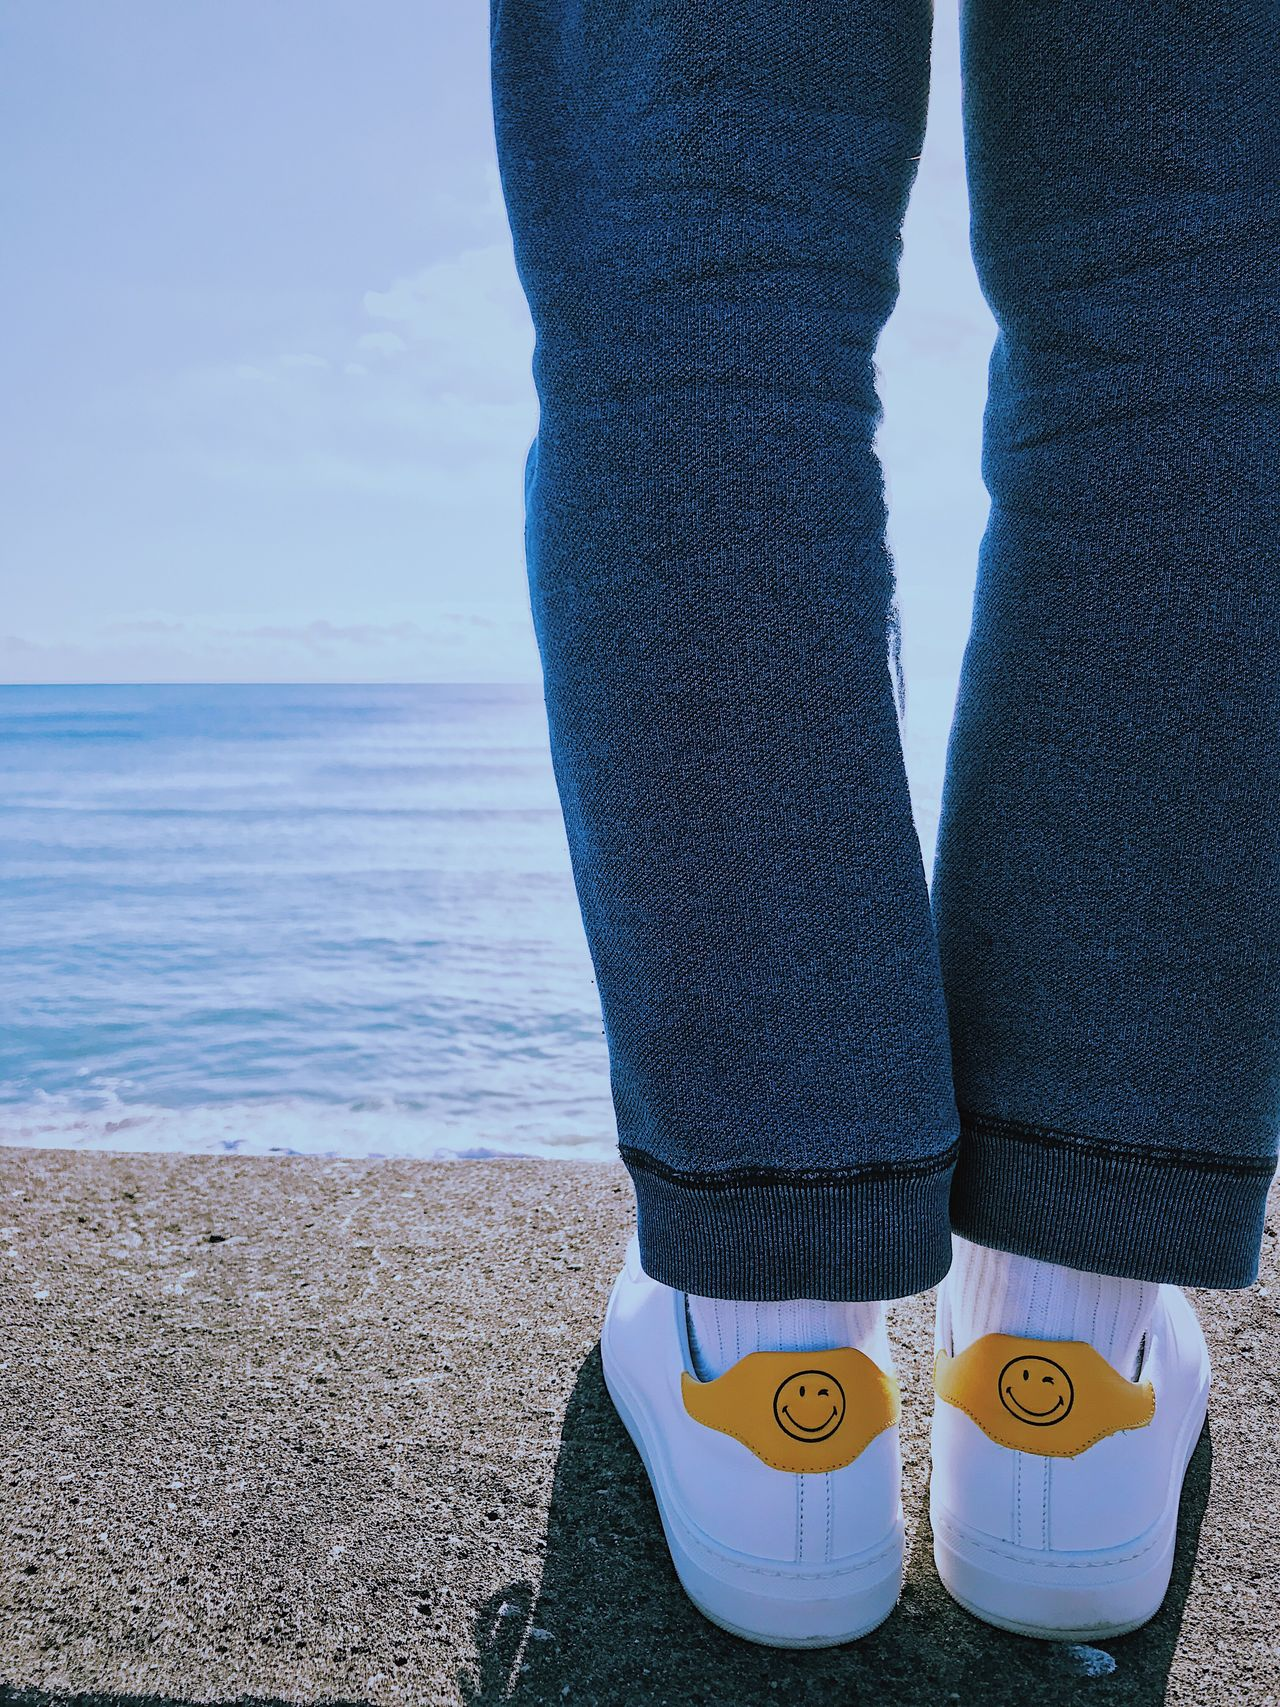 Happy weekend Ocean Fashion Sneaker Kicks Smile Wink Surf Sunny Blue Yellow Happy Sea